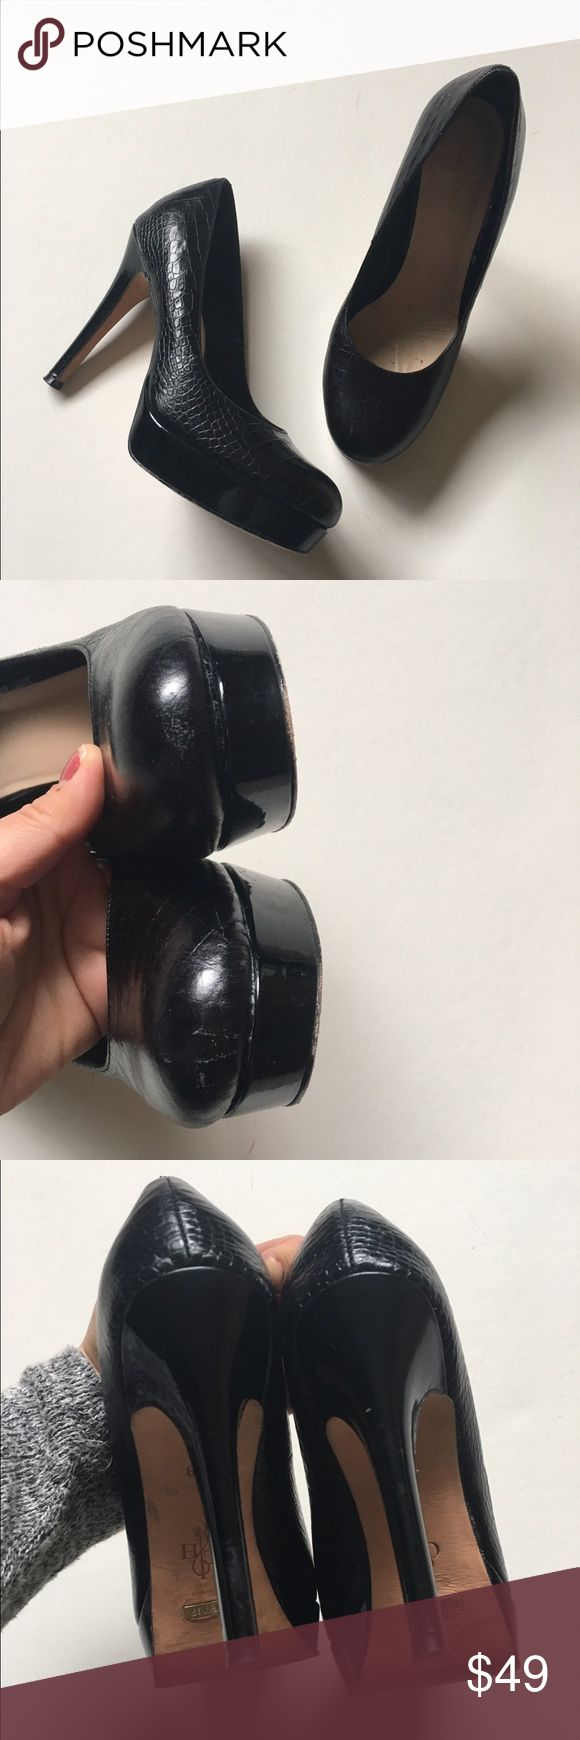 Amaizng Cole Haan Pumps!! Very good condition!! And very comfortable for the height!!  They are 6.5 but fit me well and I'm a 6. 4.5 inch heel height Cole Haan Shoes Heels